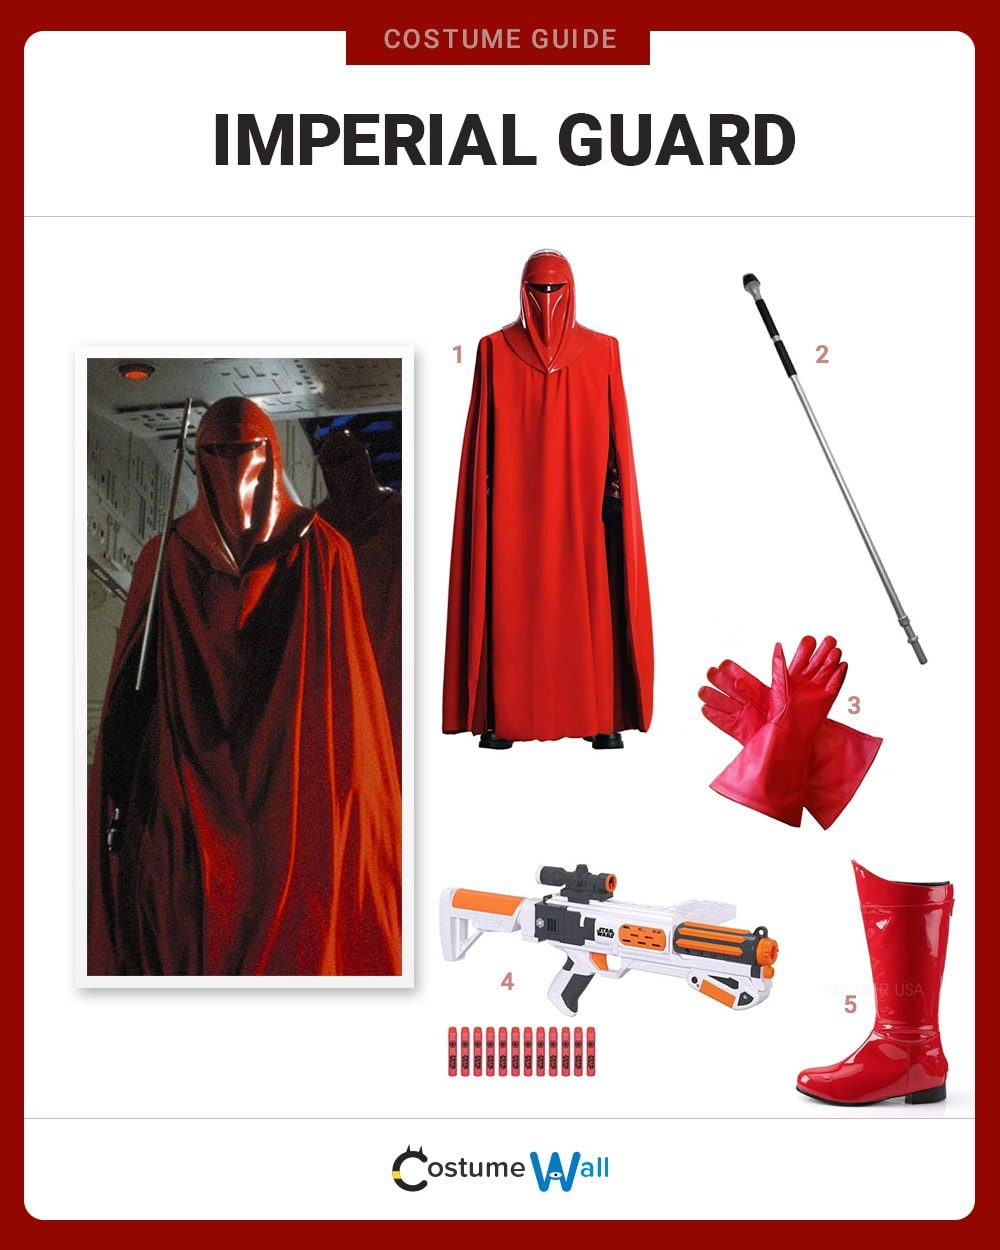 Imperial Guard Costume Guide